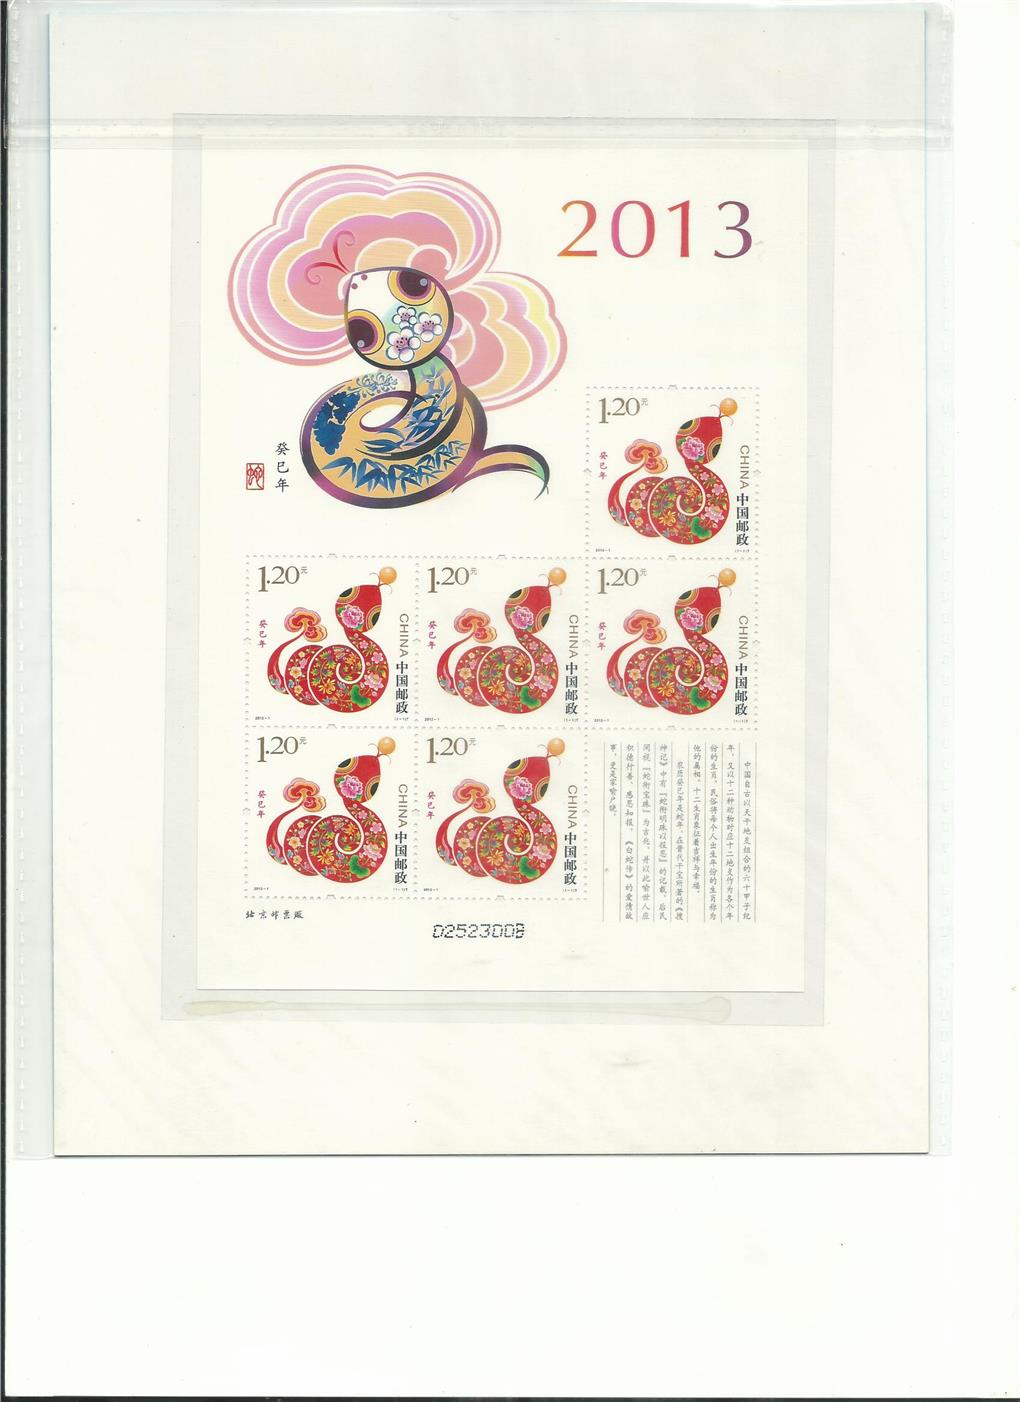 CH2013-1S CHINA 2013 YEAR OF THE SNAKE MINI SHEETLET